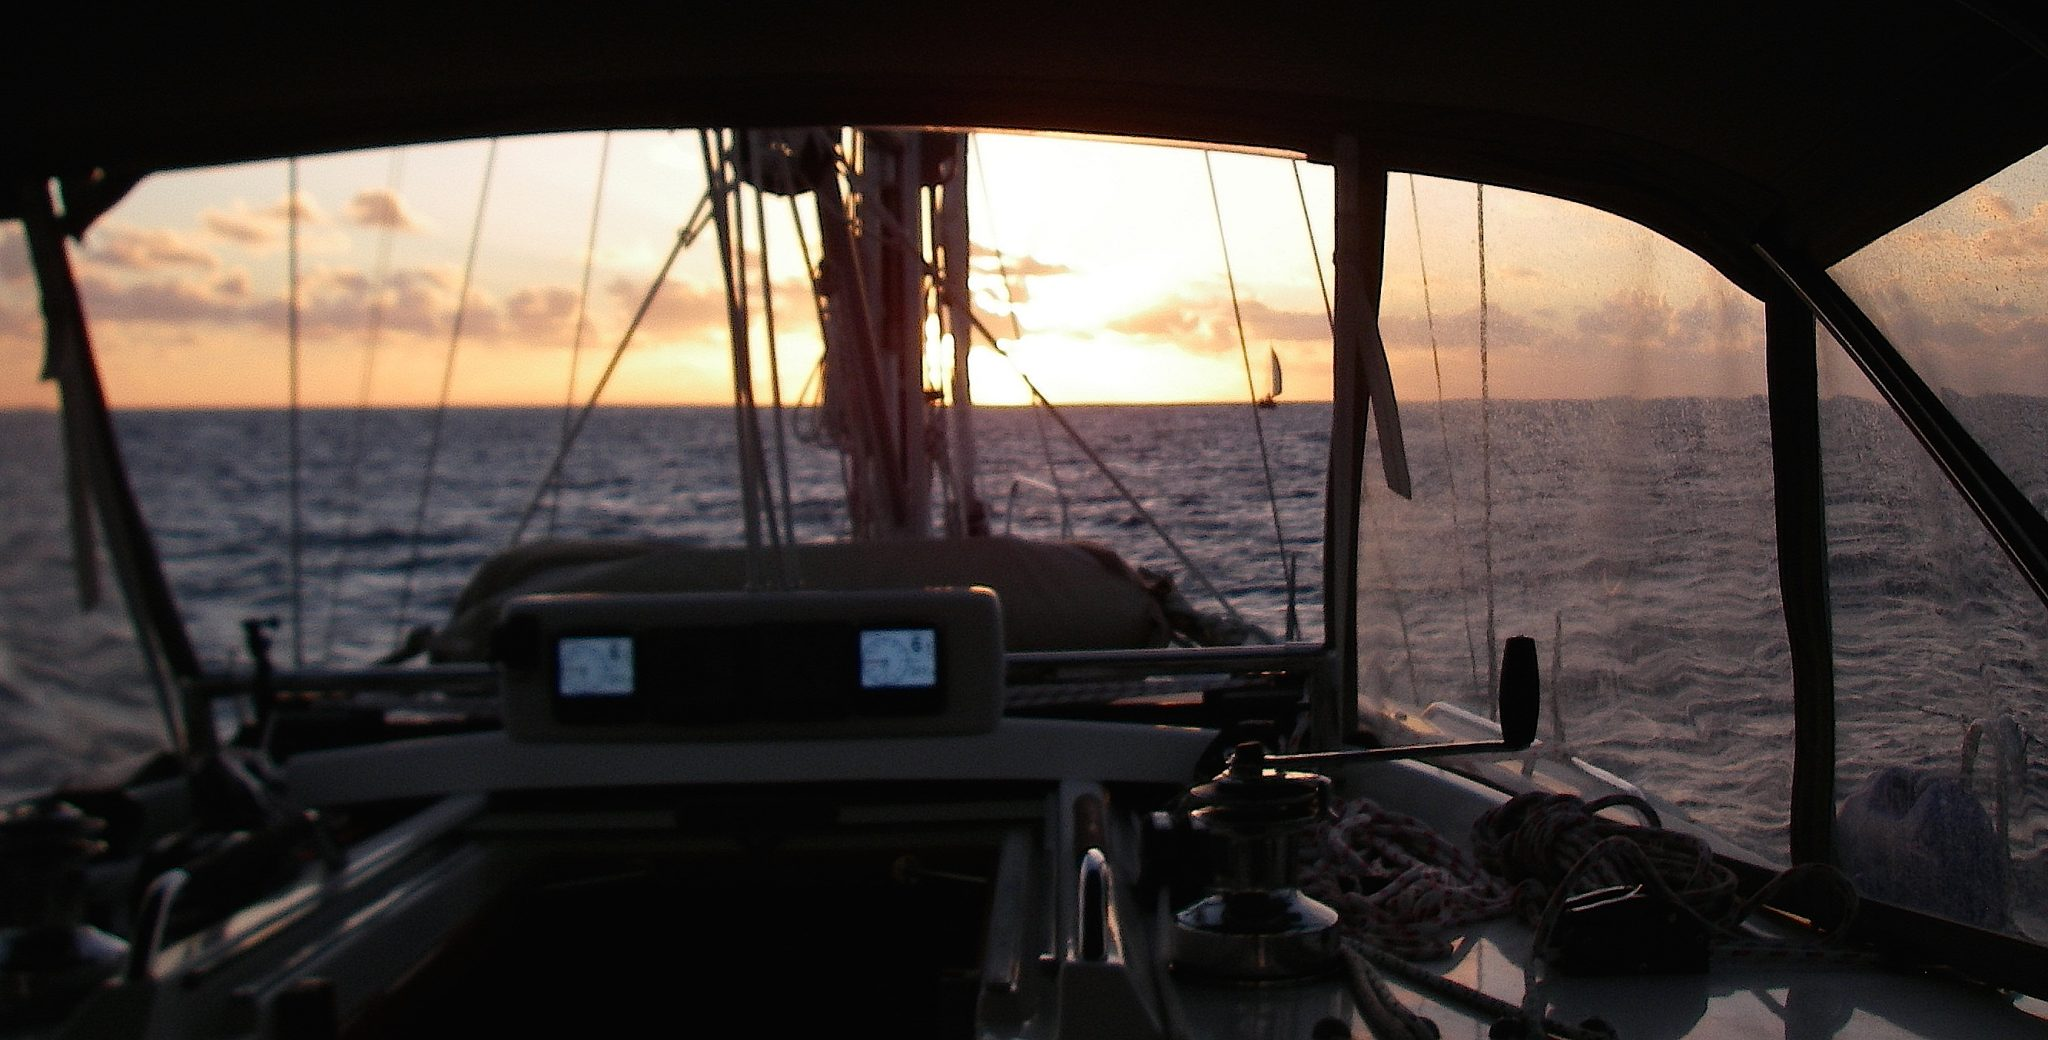 3. Joyful's passage to Vanuatu began with a gorgeous Tongan sunset. If you look closely, you can see another sail boat on the horizon to starboard of Joyful's bow